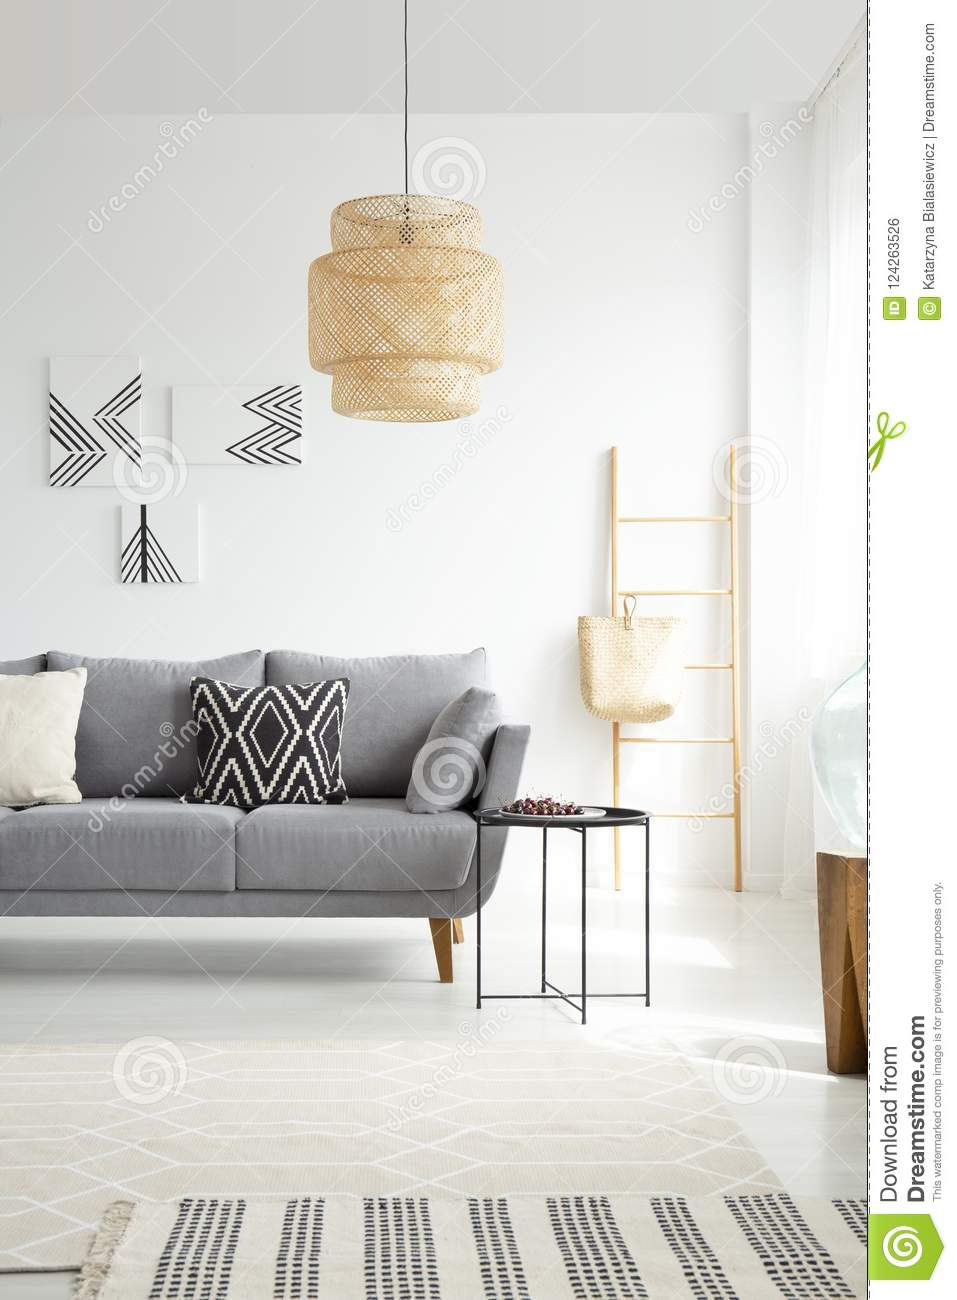 Grey settee with cushions in white spacious living room interior  sc 1 st  Dreamstime.com & Grey Settee With Cushions In White Spacious Living Room Interior ...